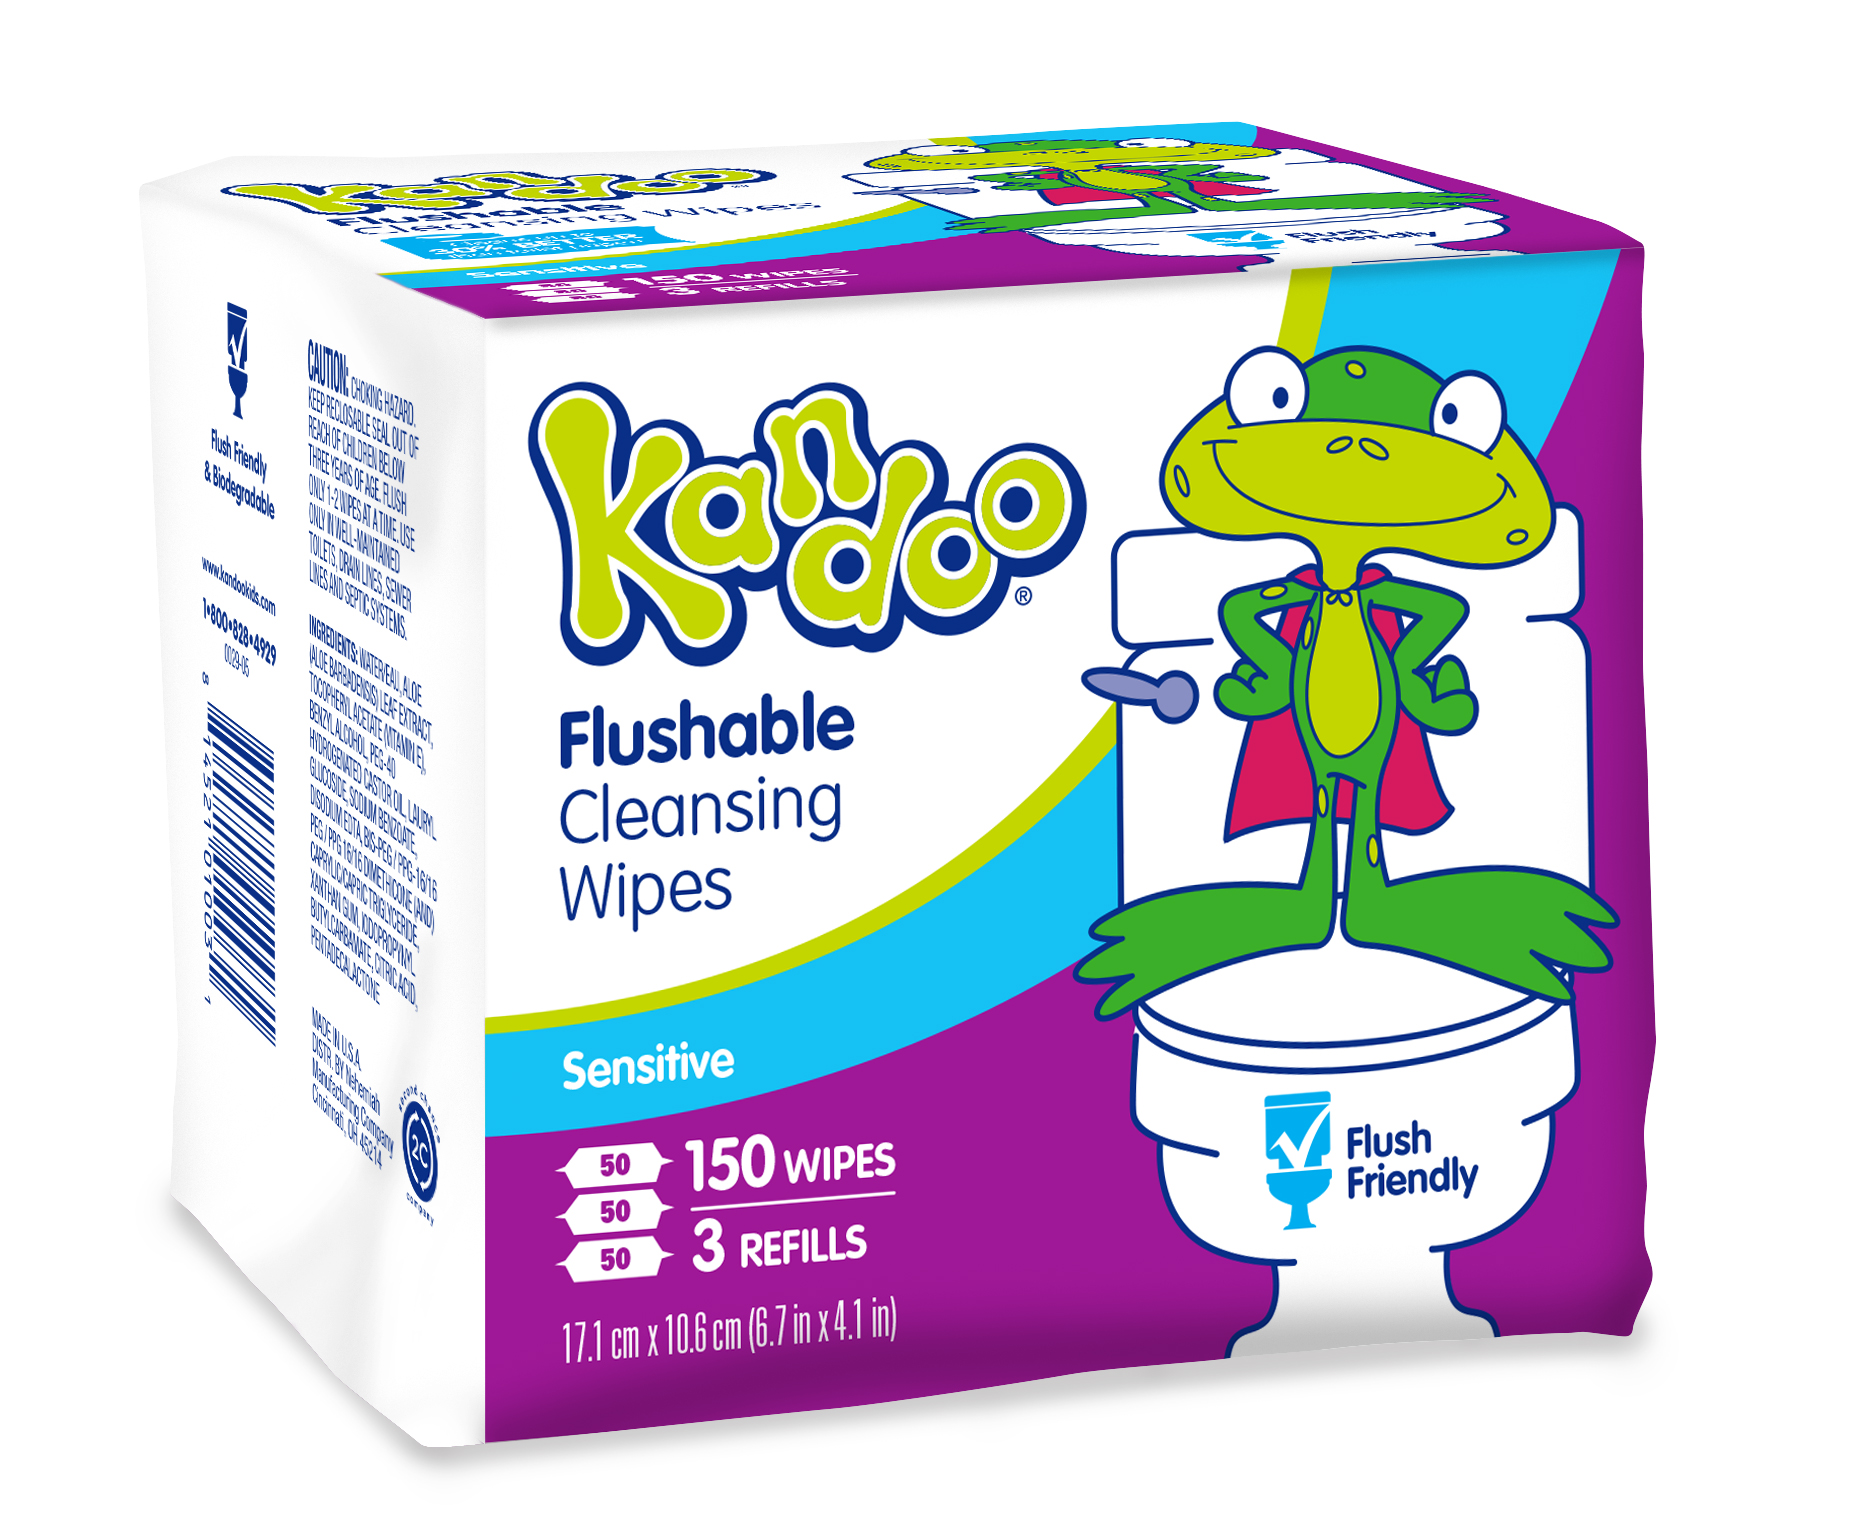 Kandoo flushable wipes sensitive 150 count